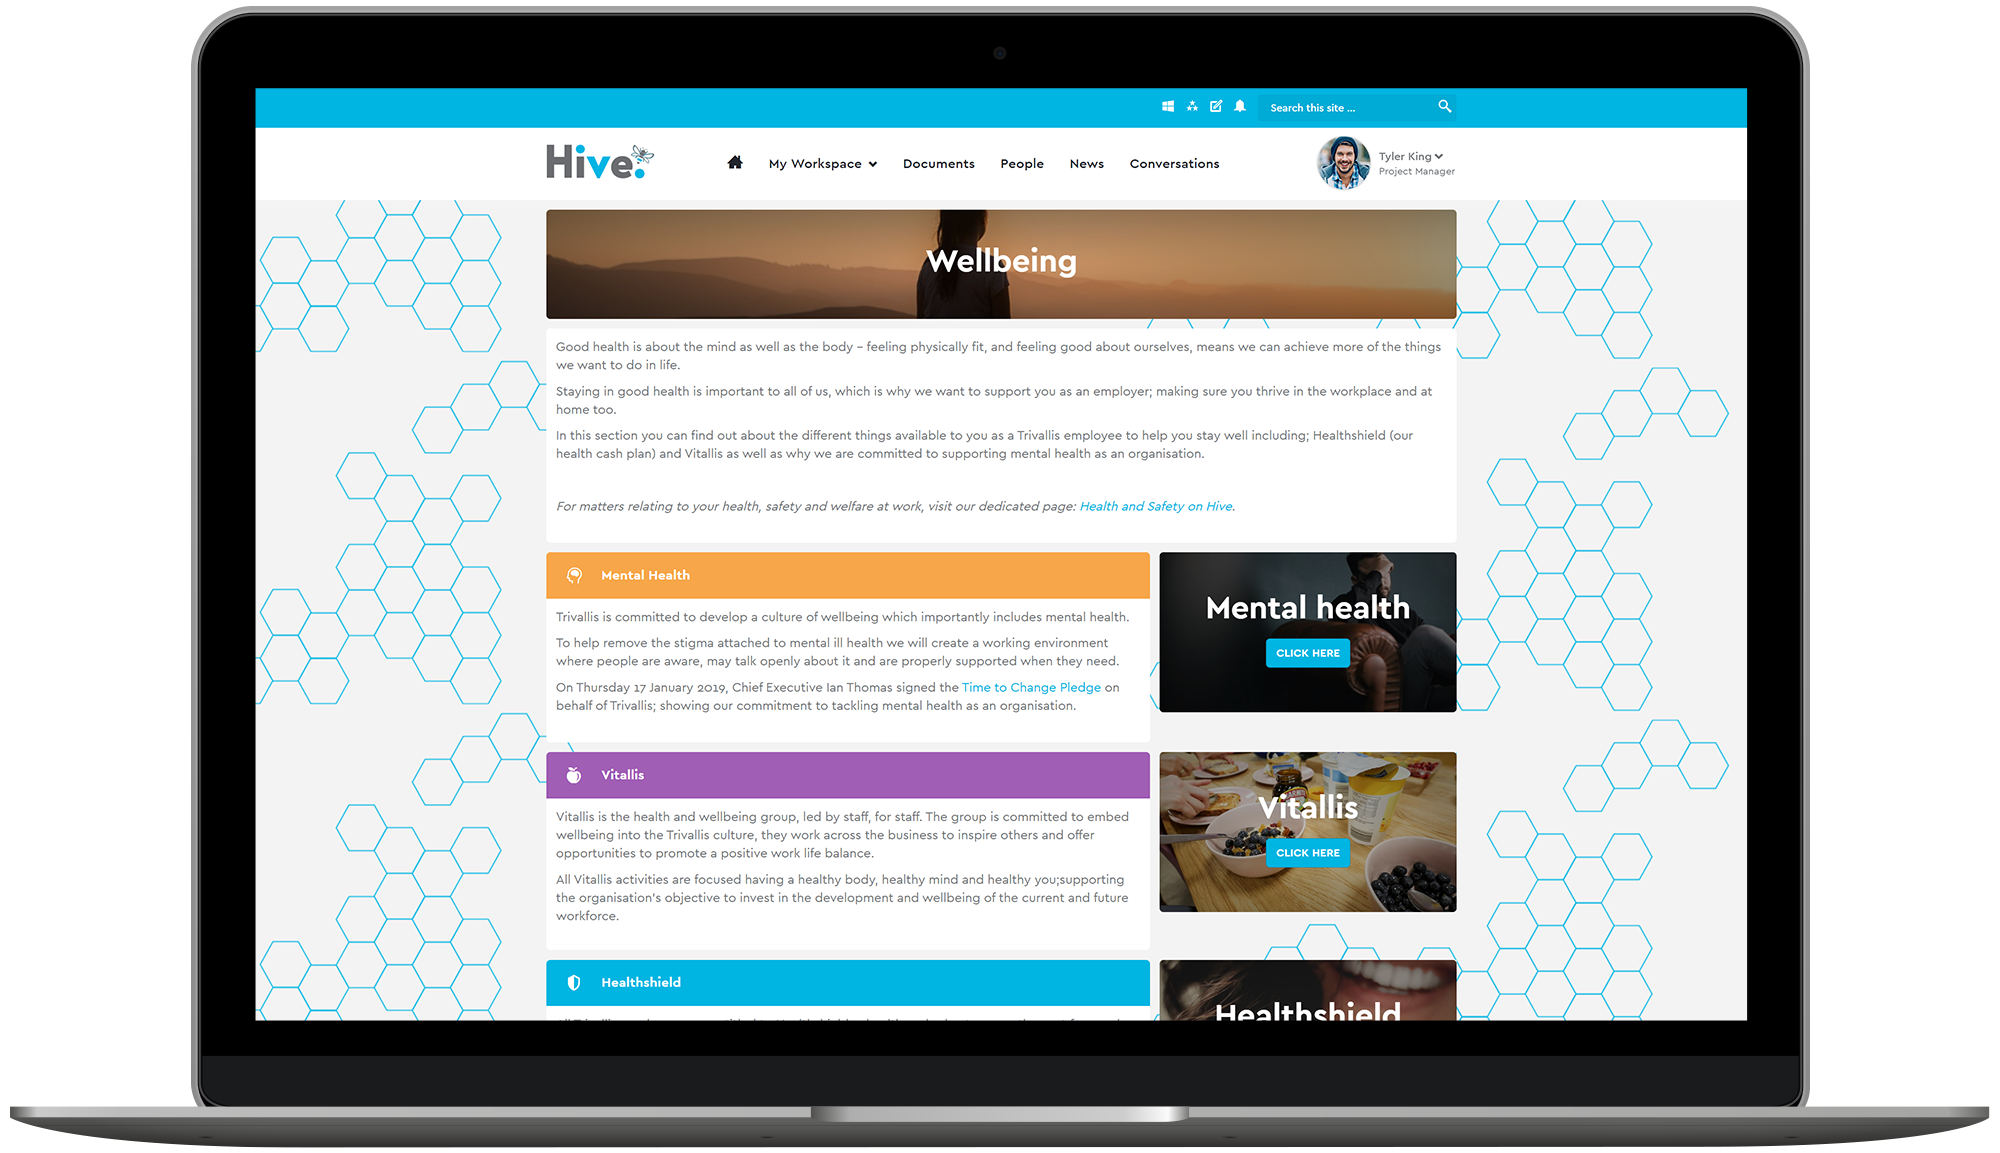 Trivallis' Wellbeing page is a gateway to Vitallis